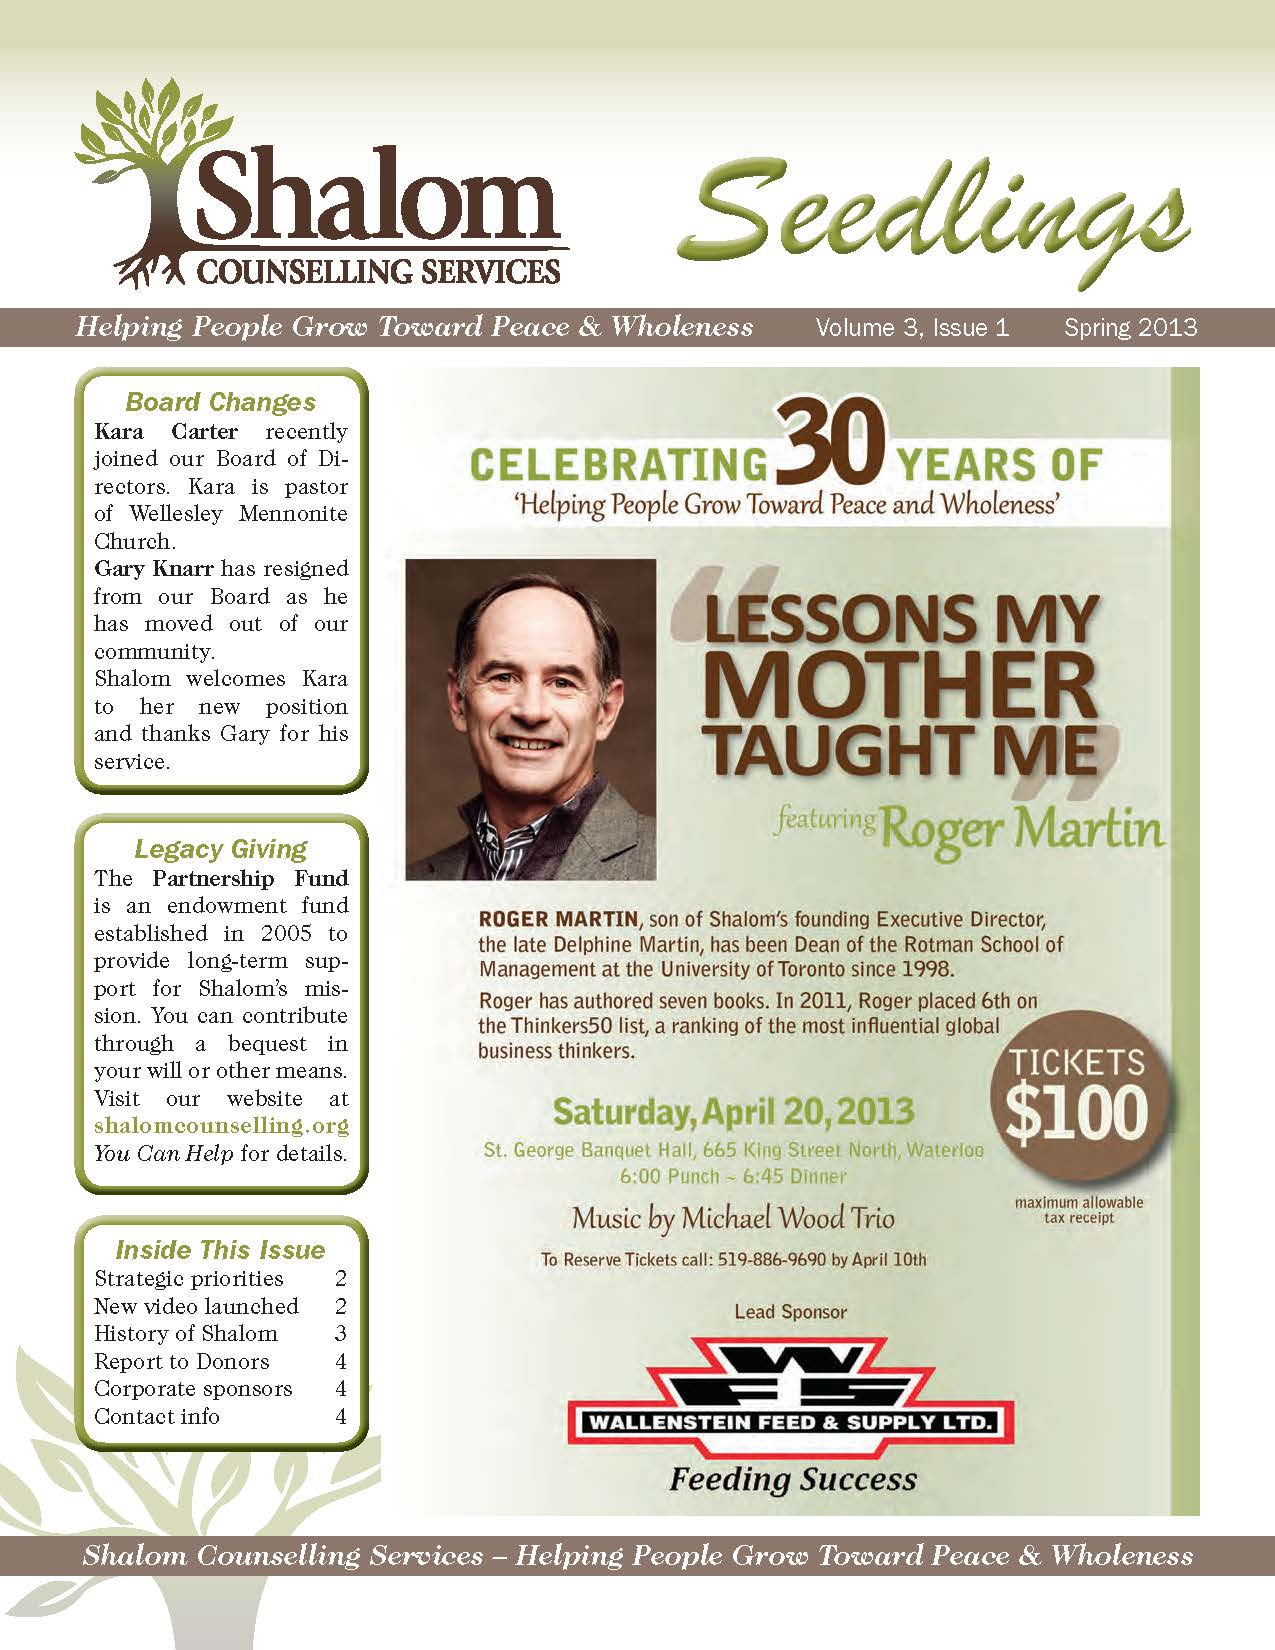 Spring 2013 Seedlings Newsletter